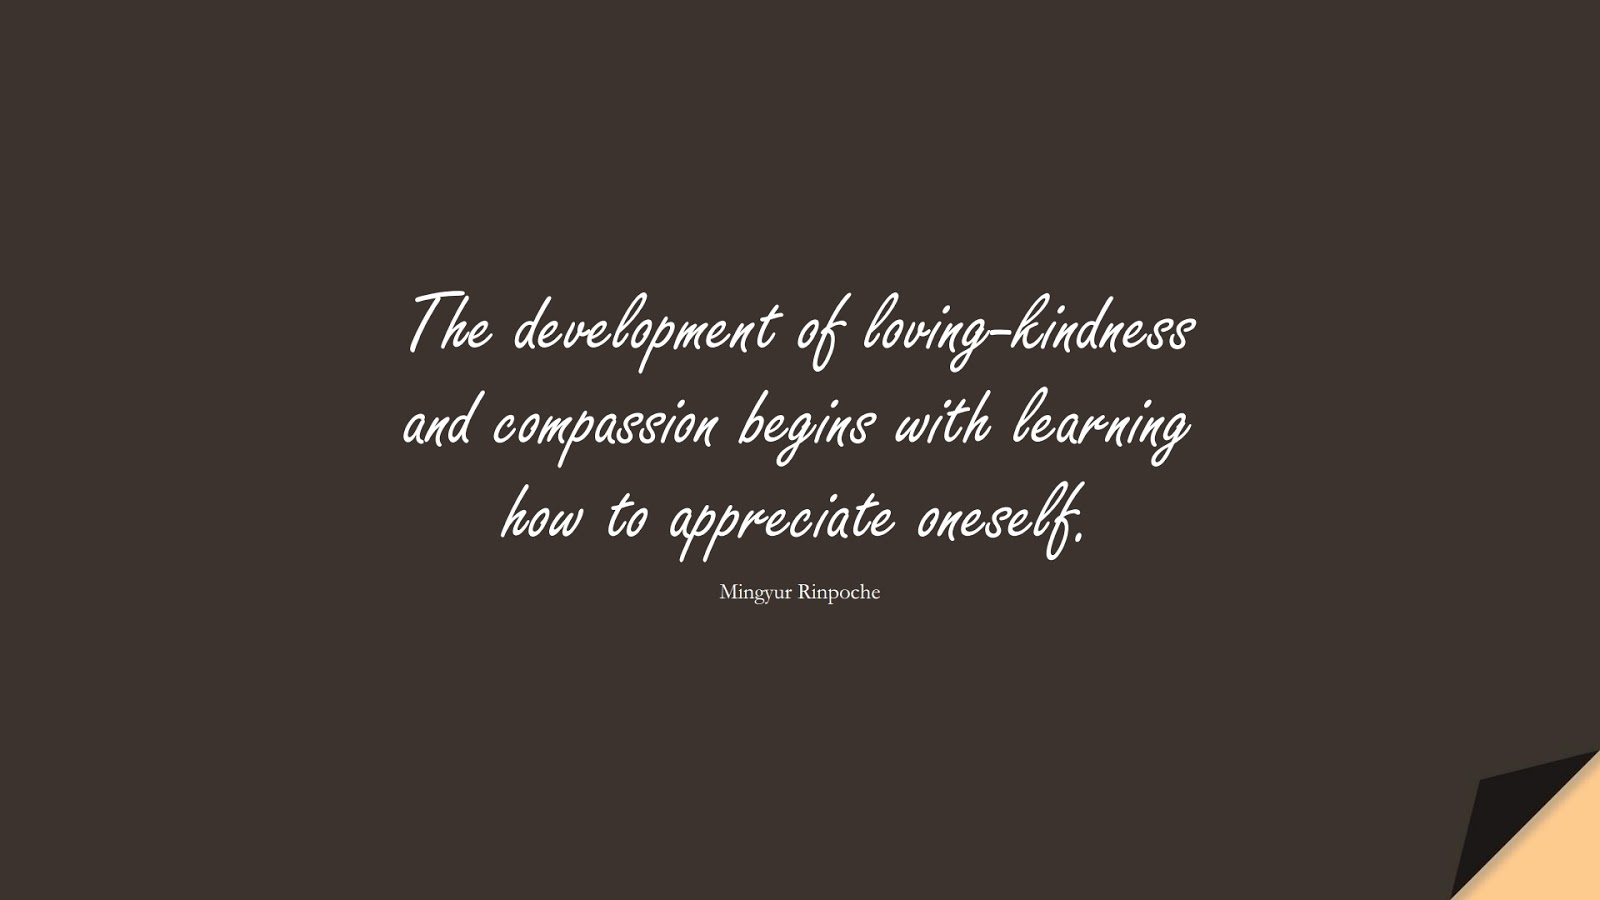 The development of loving-kindness and compassion begins with learning how to appreciate oneself. (Mingyur Rinpoche);  #LoveYourselfQuotes